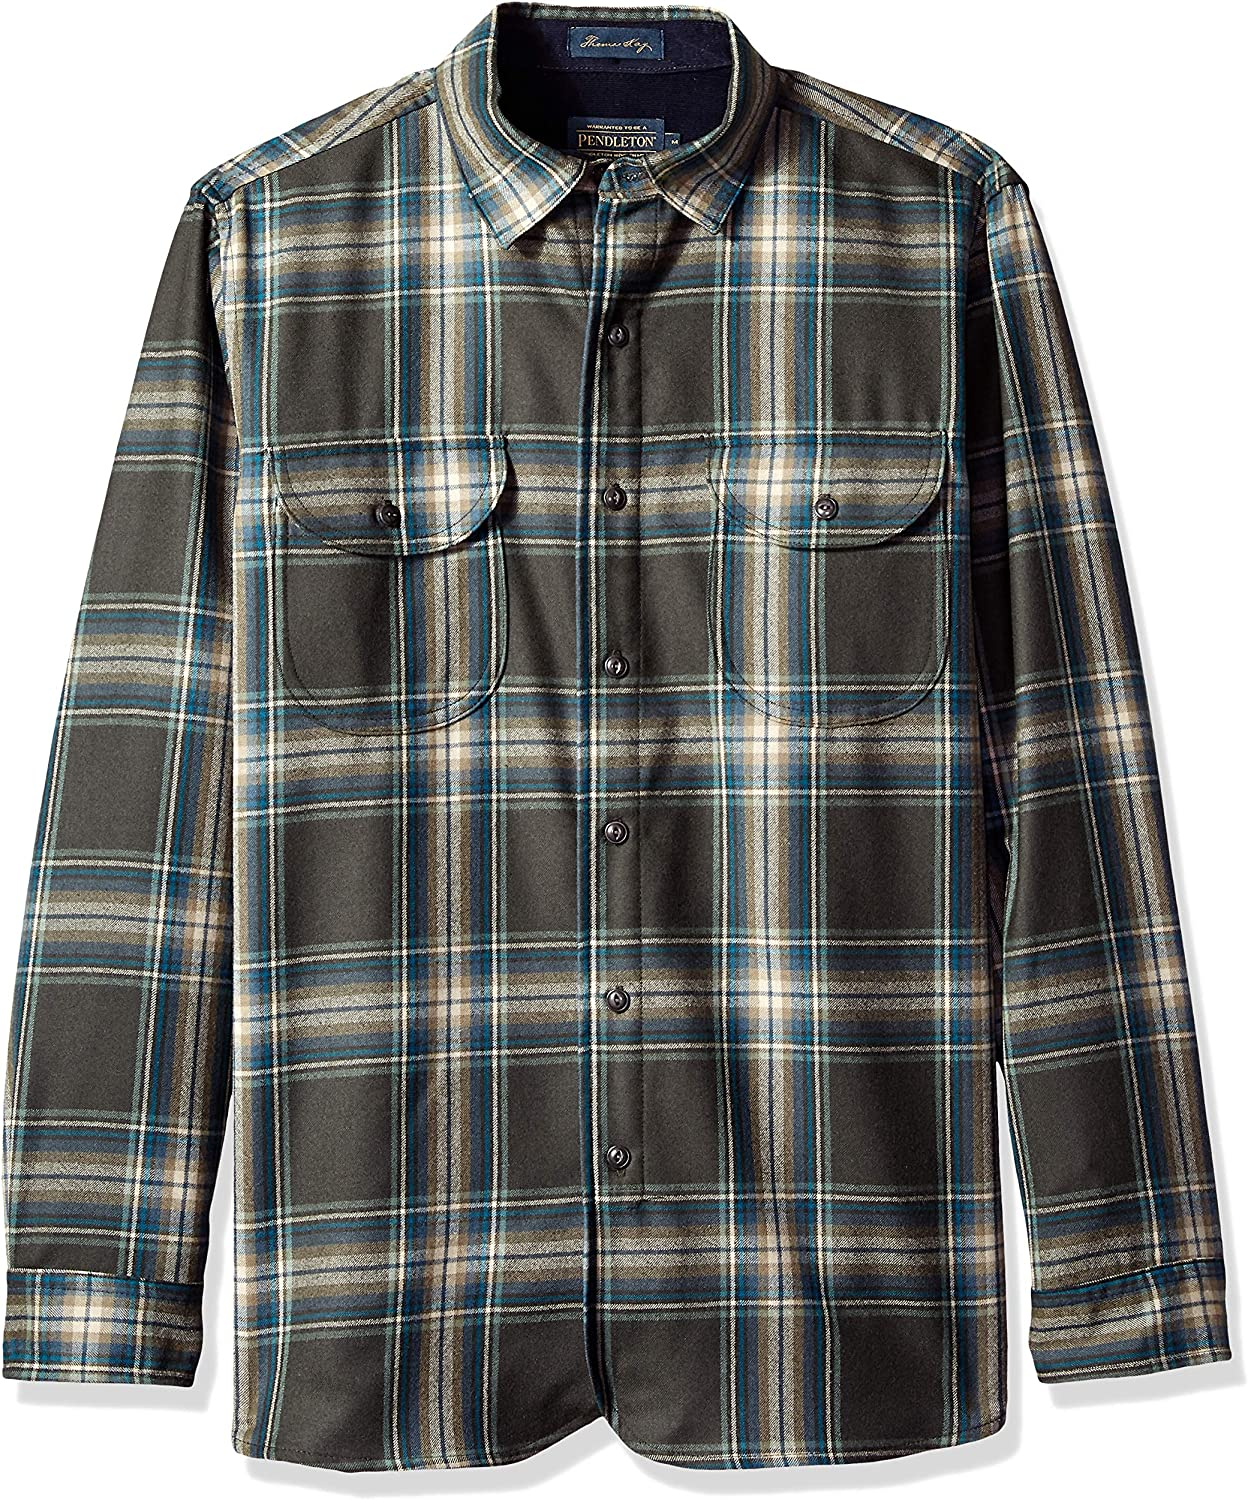 Pendleton Mens Long Sleeve Fitted Buckley Shirt